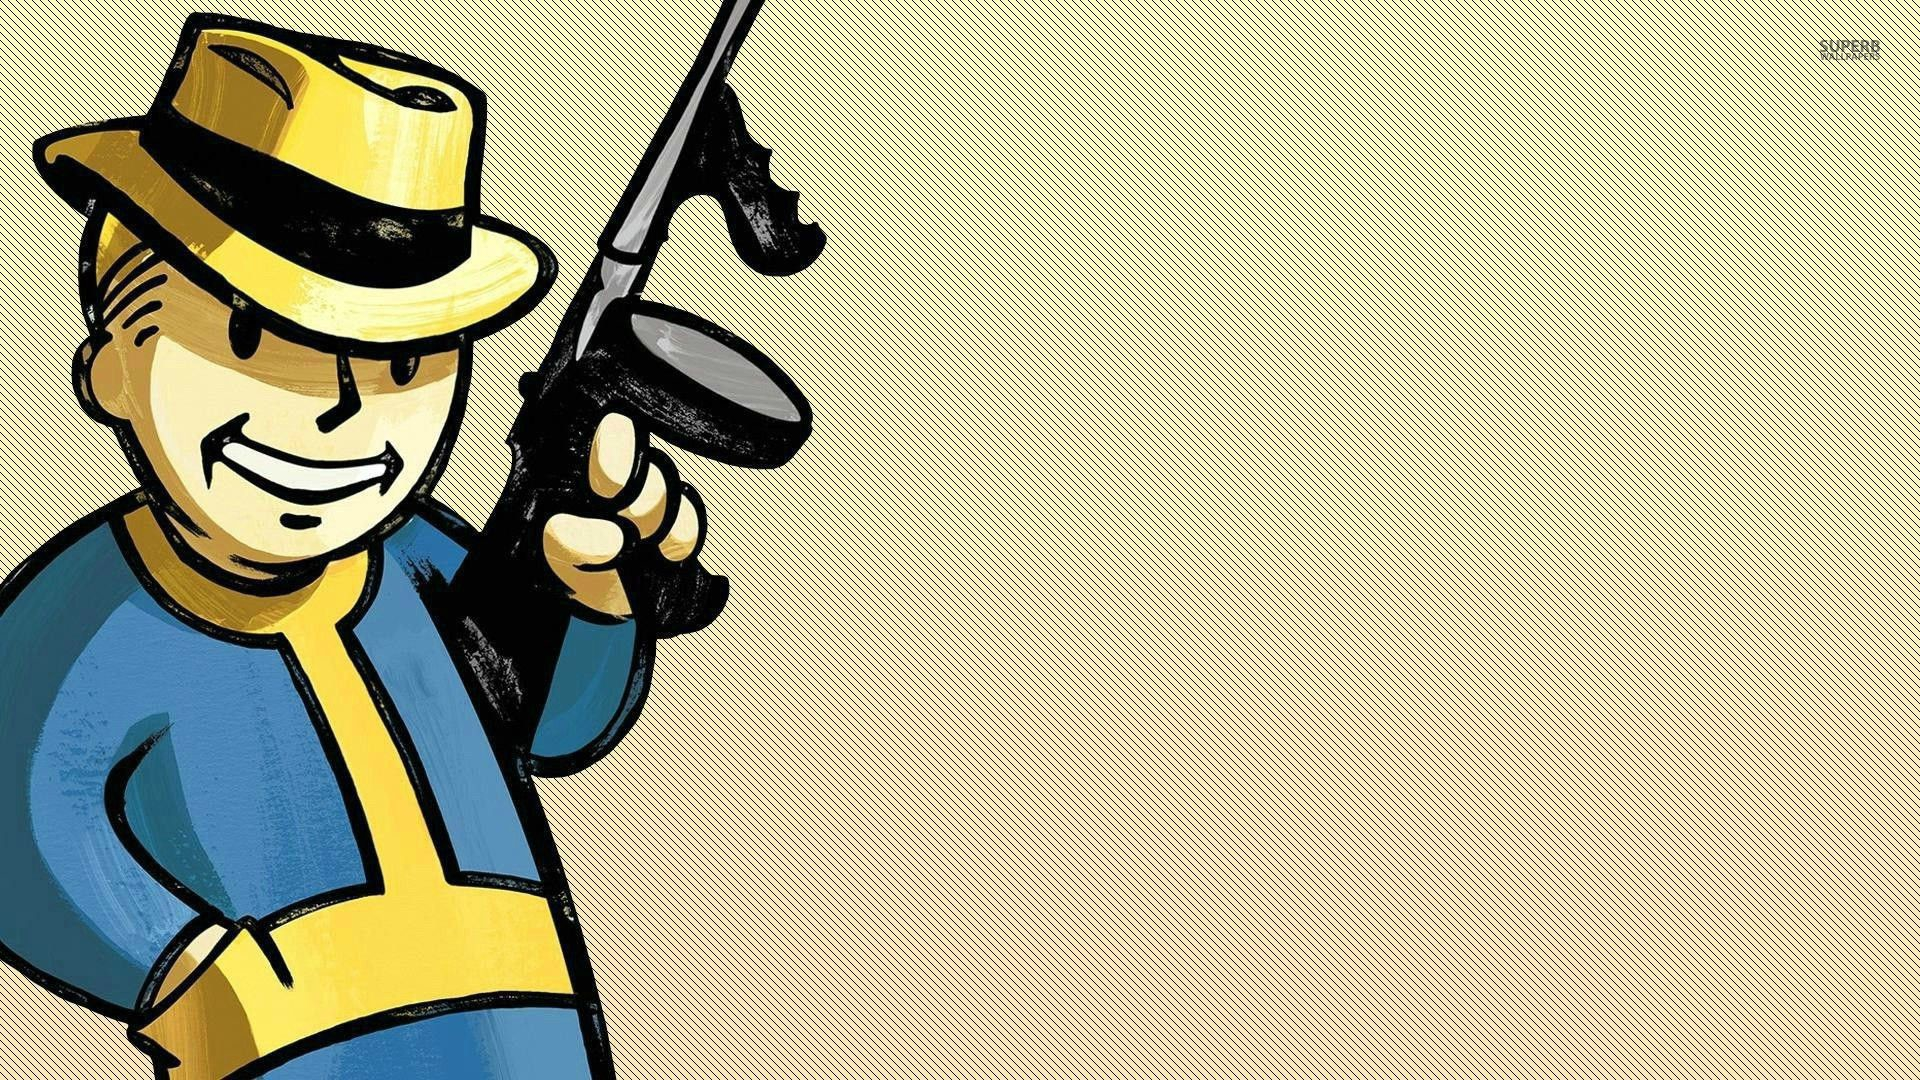 1920x1080 Vault Boy - Fallout wallpaper - Game wallpapers - #